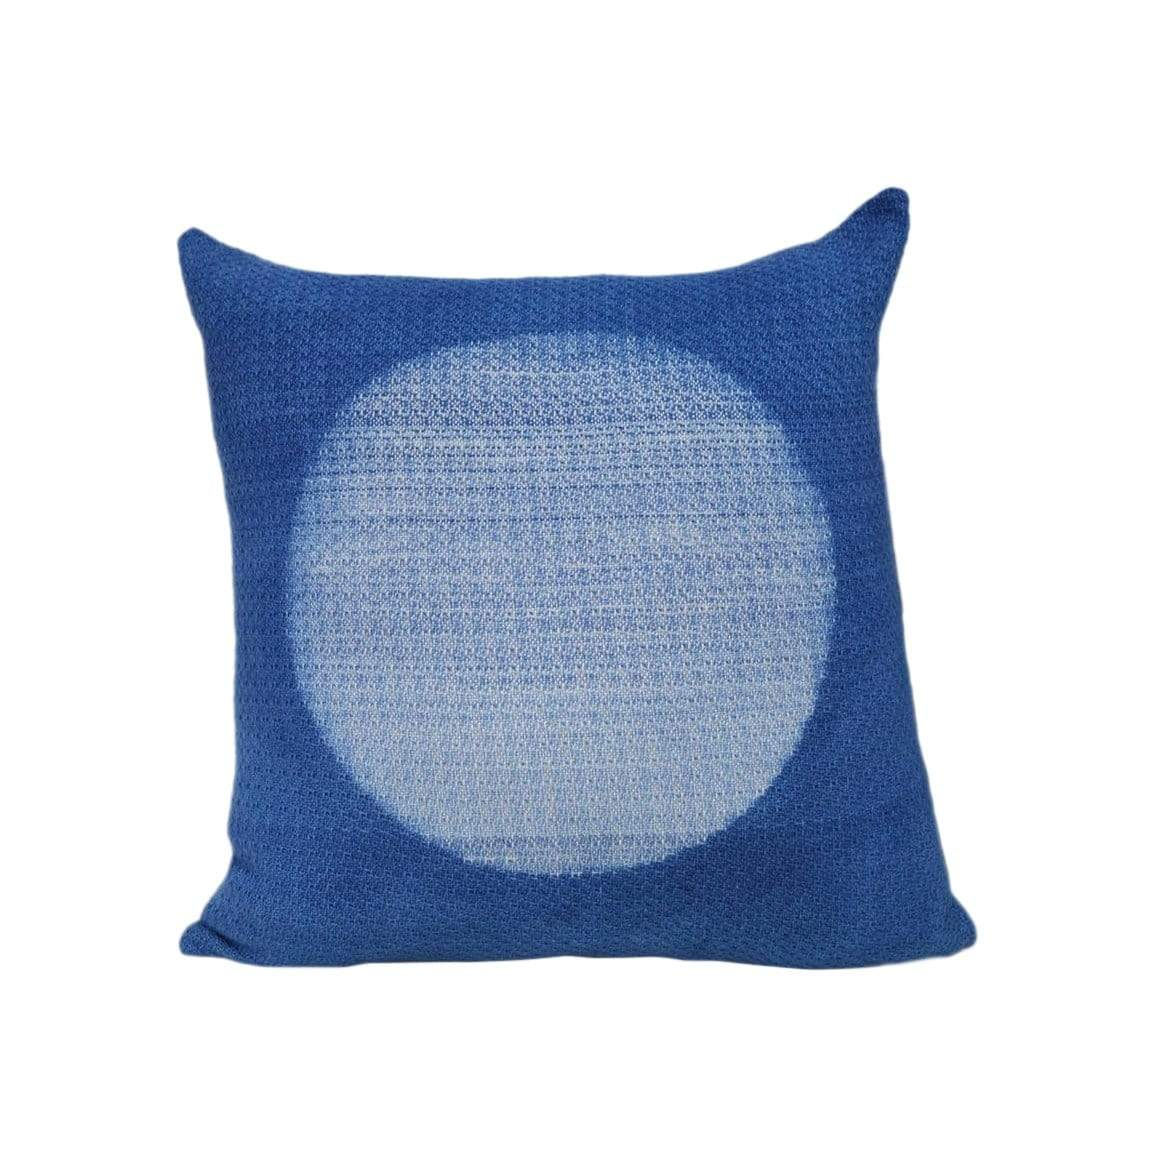 Ssen Cushions + Throws Moon I Pillow